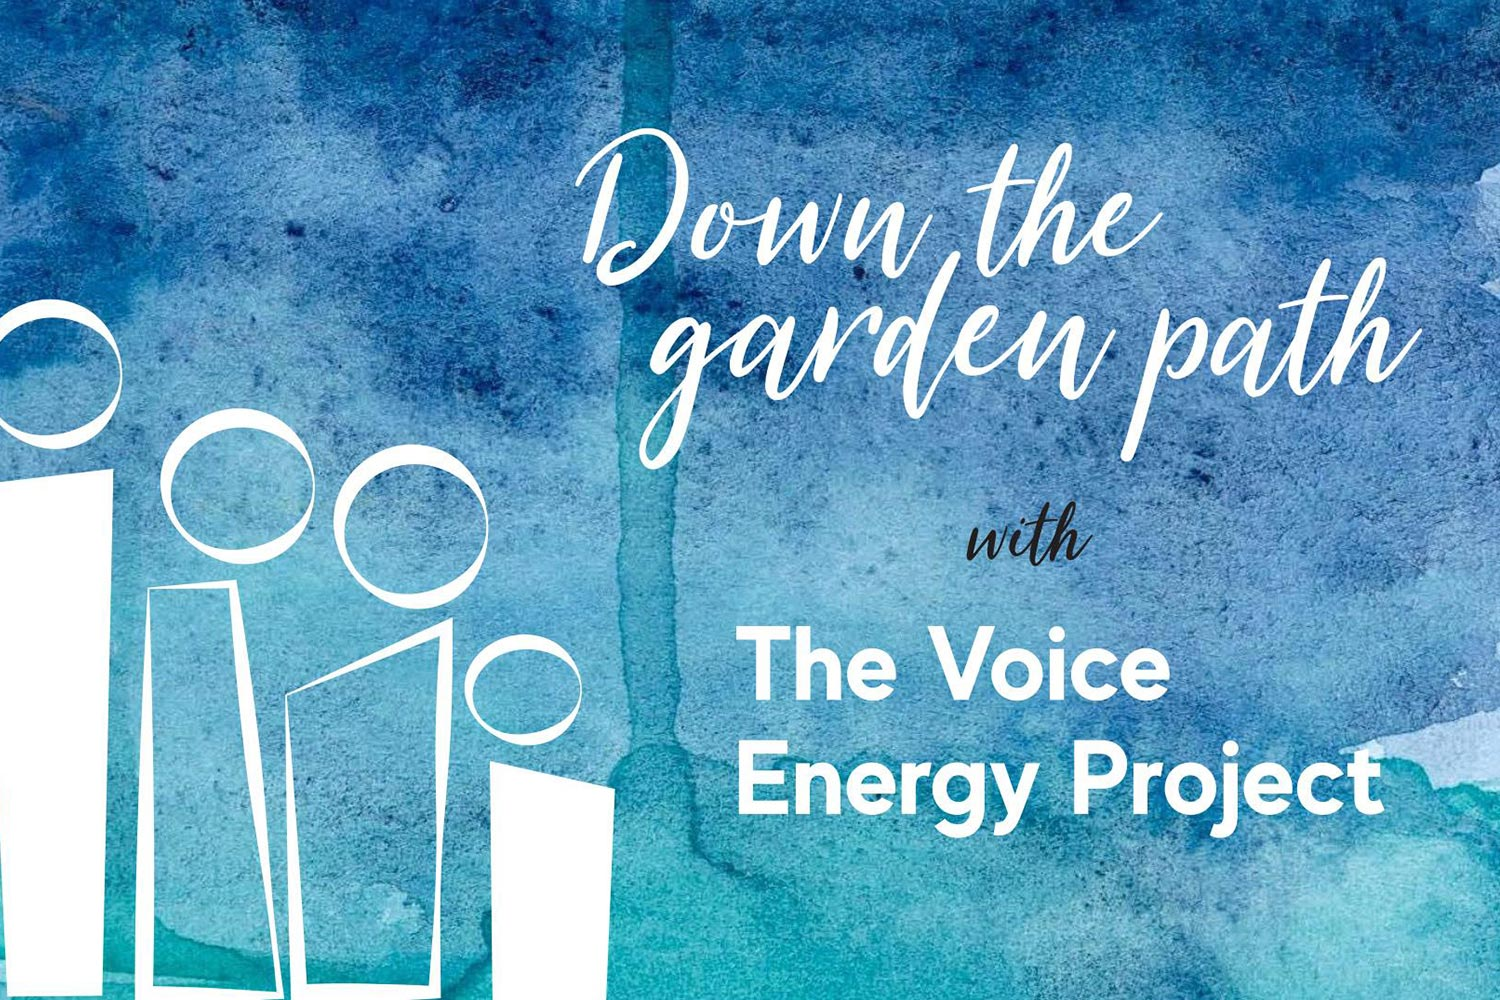 Flyer for 'Down the garden path' project at St Margaret's House, East London